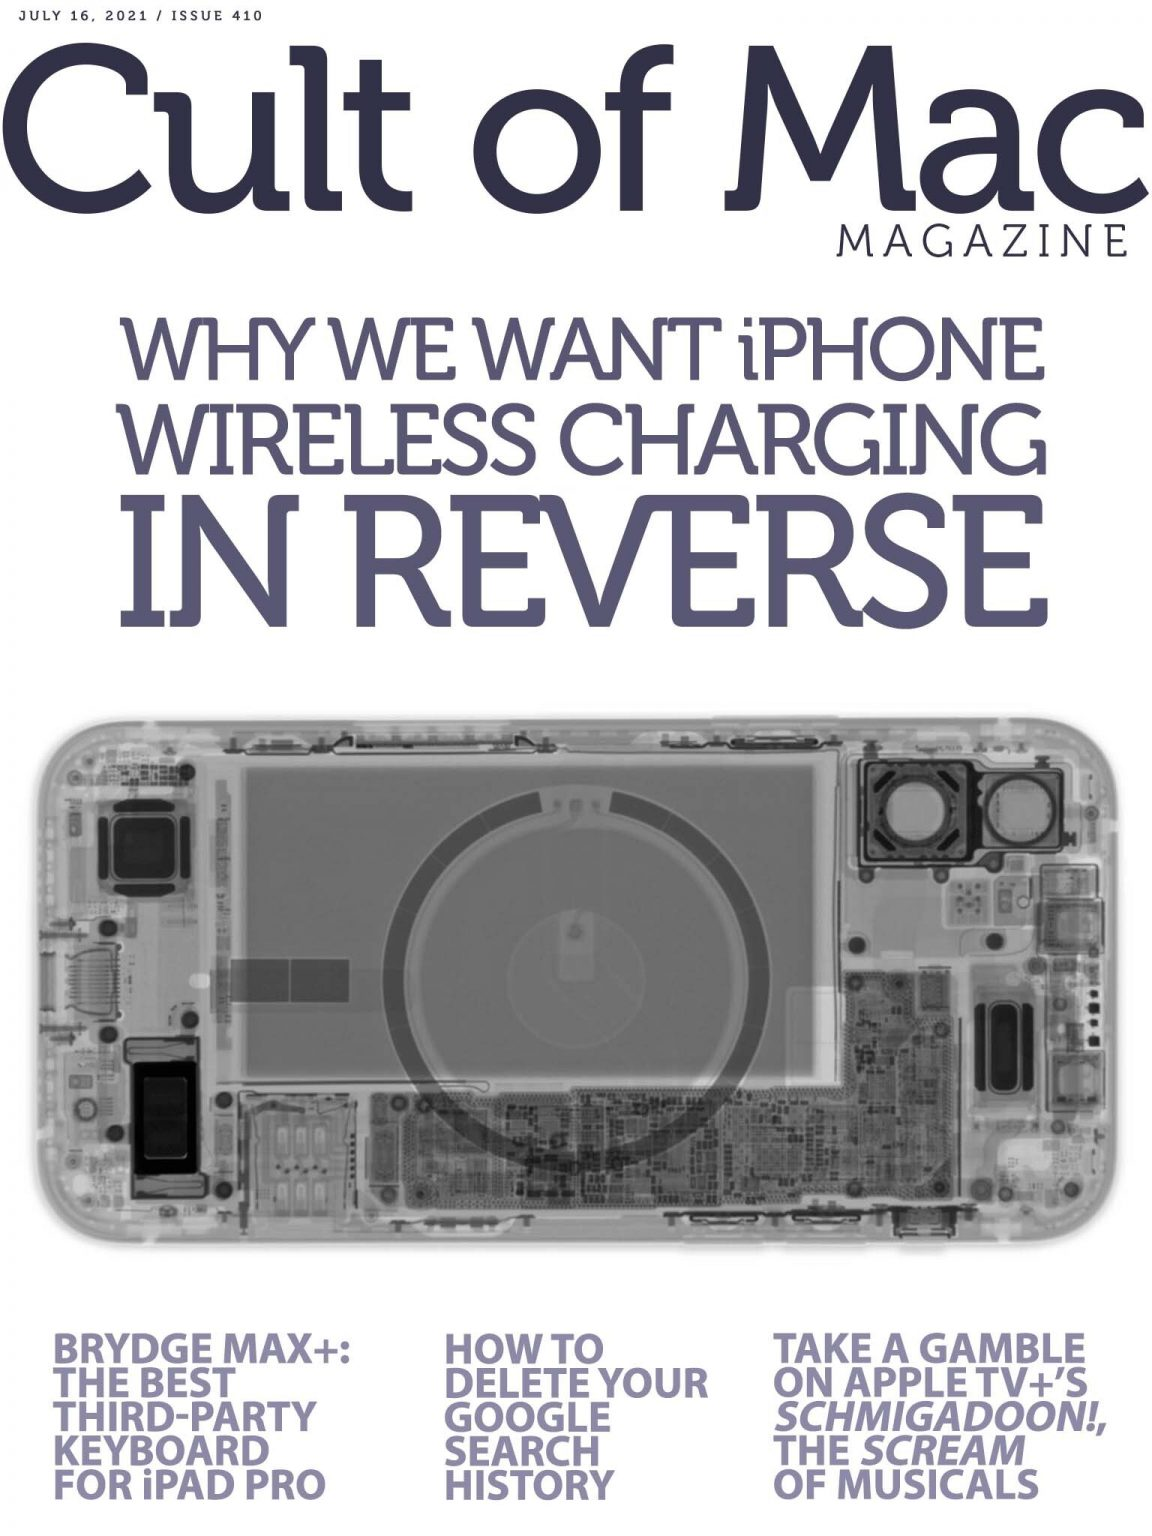 iPhone reverse wireless charging. We want more.